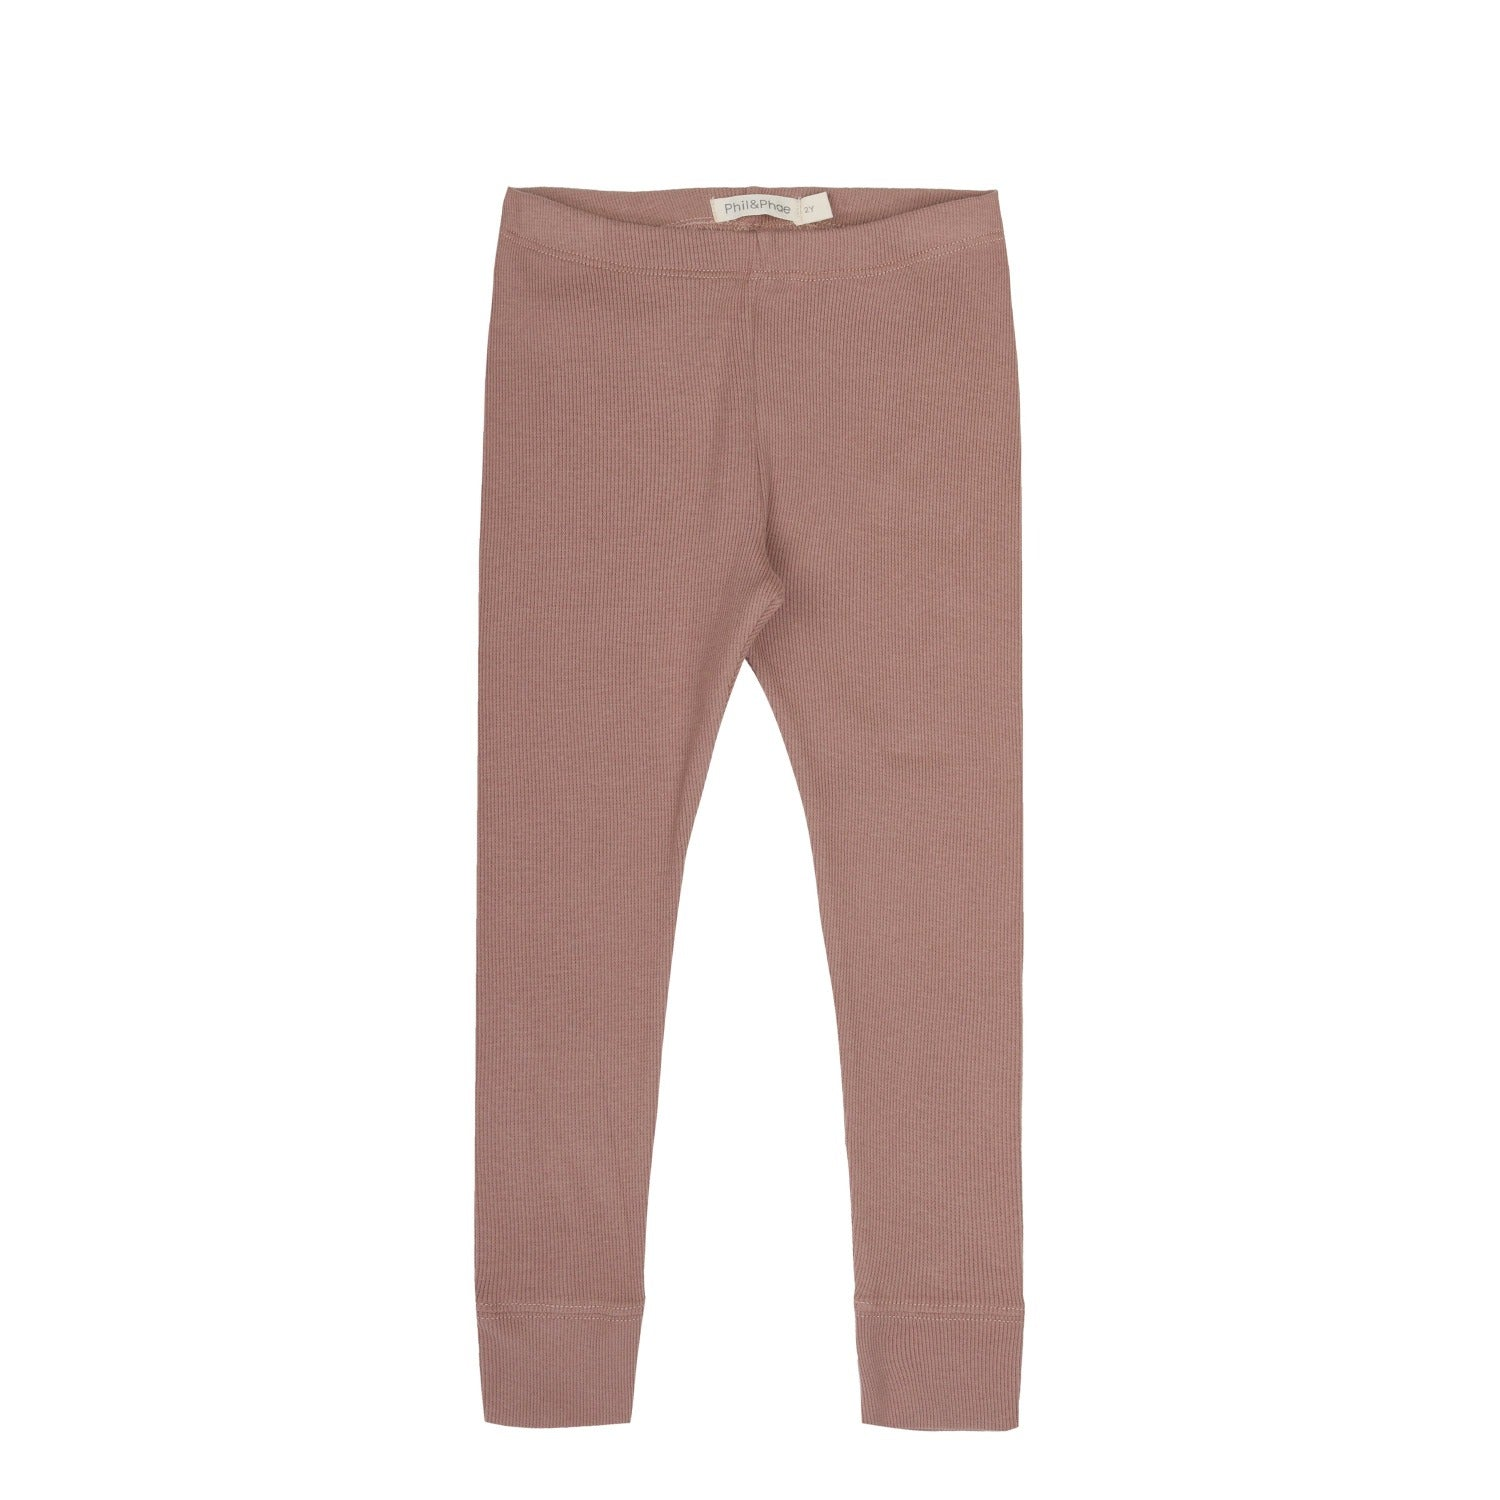 Organic cotton rib leggings by sustainable kidswear brand Phil&Phae